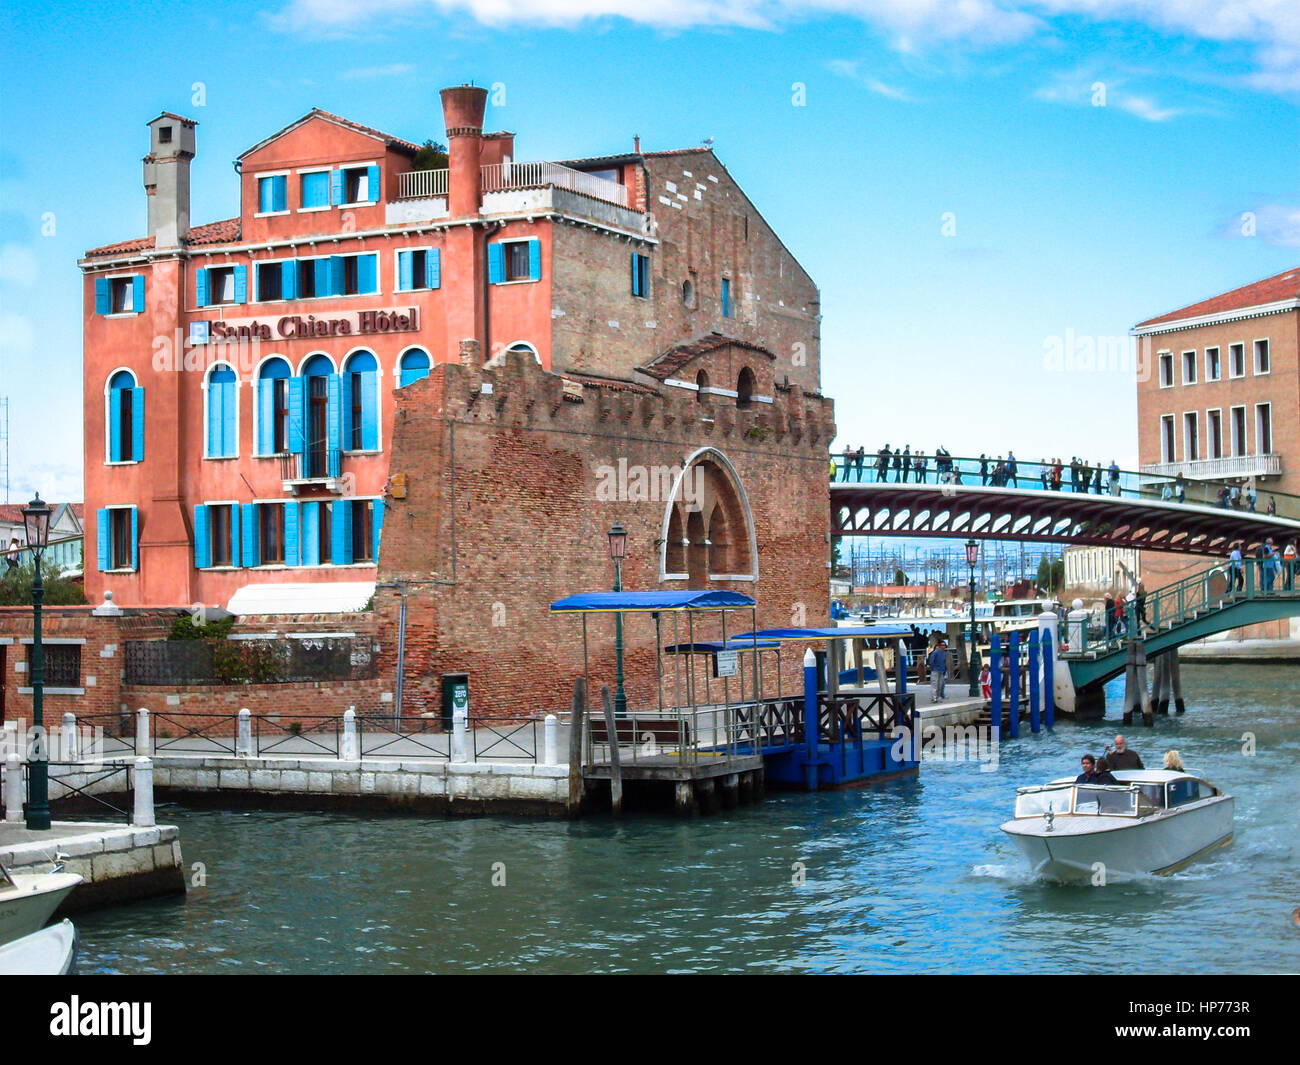 The Constitution Bridge and Hotel Santa Chaira Venice, Italy – October  04, 2008 - Stock Image